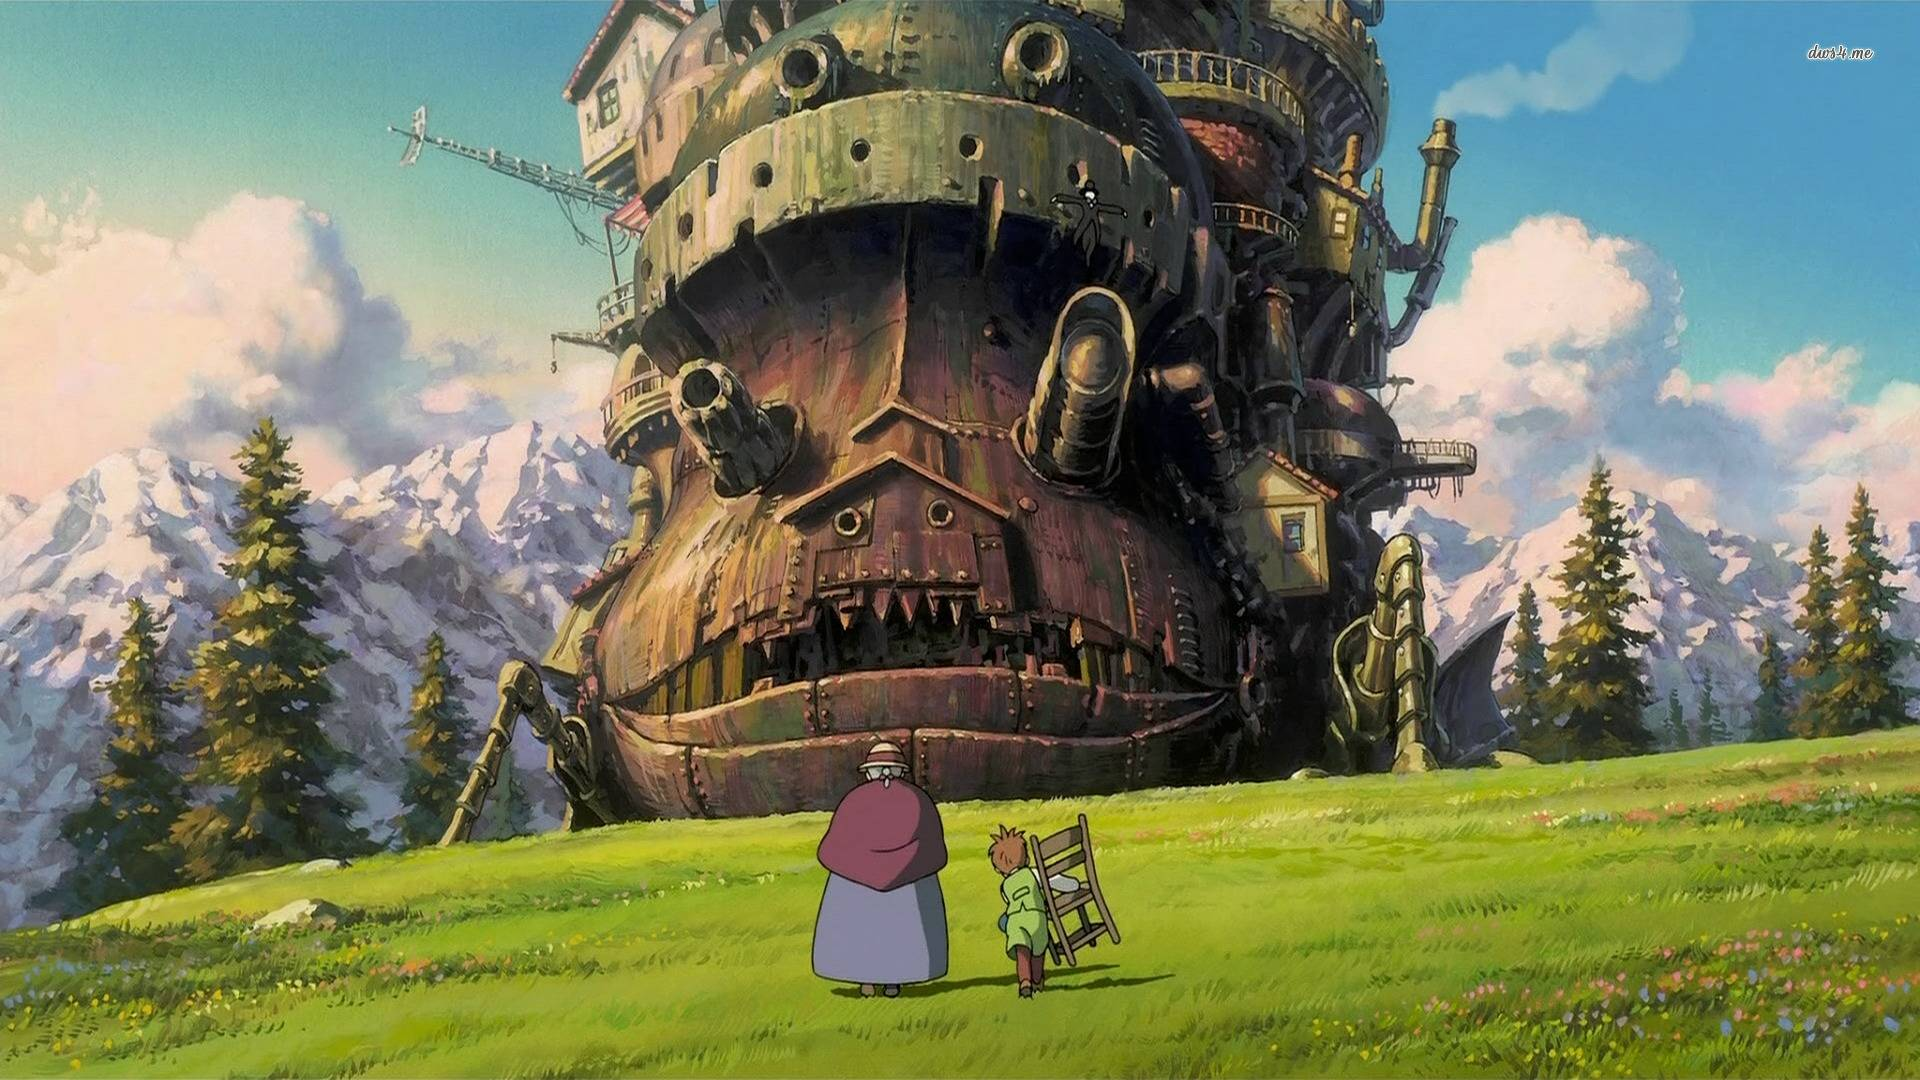 Studio Ghibli Wallpapers Archives Studio Ghibli Movies